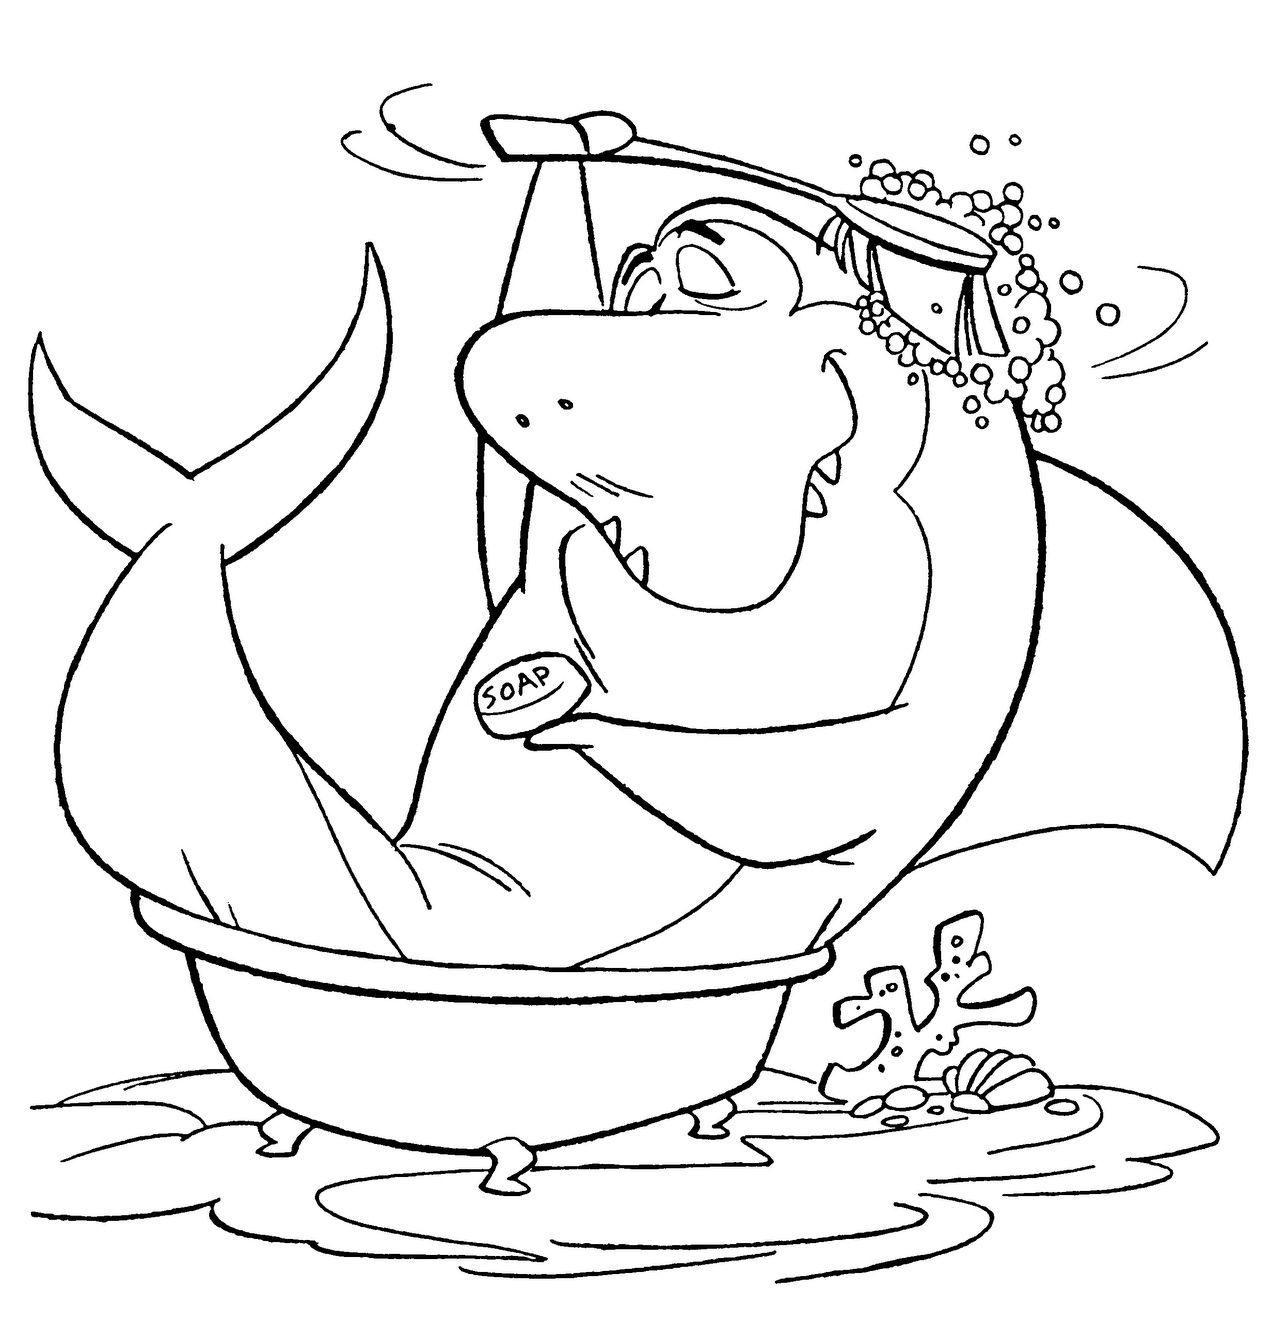 hanna barbera coloring pages - photo#28